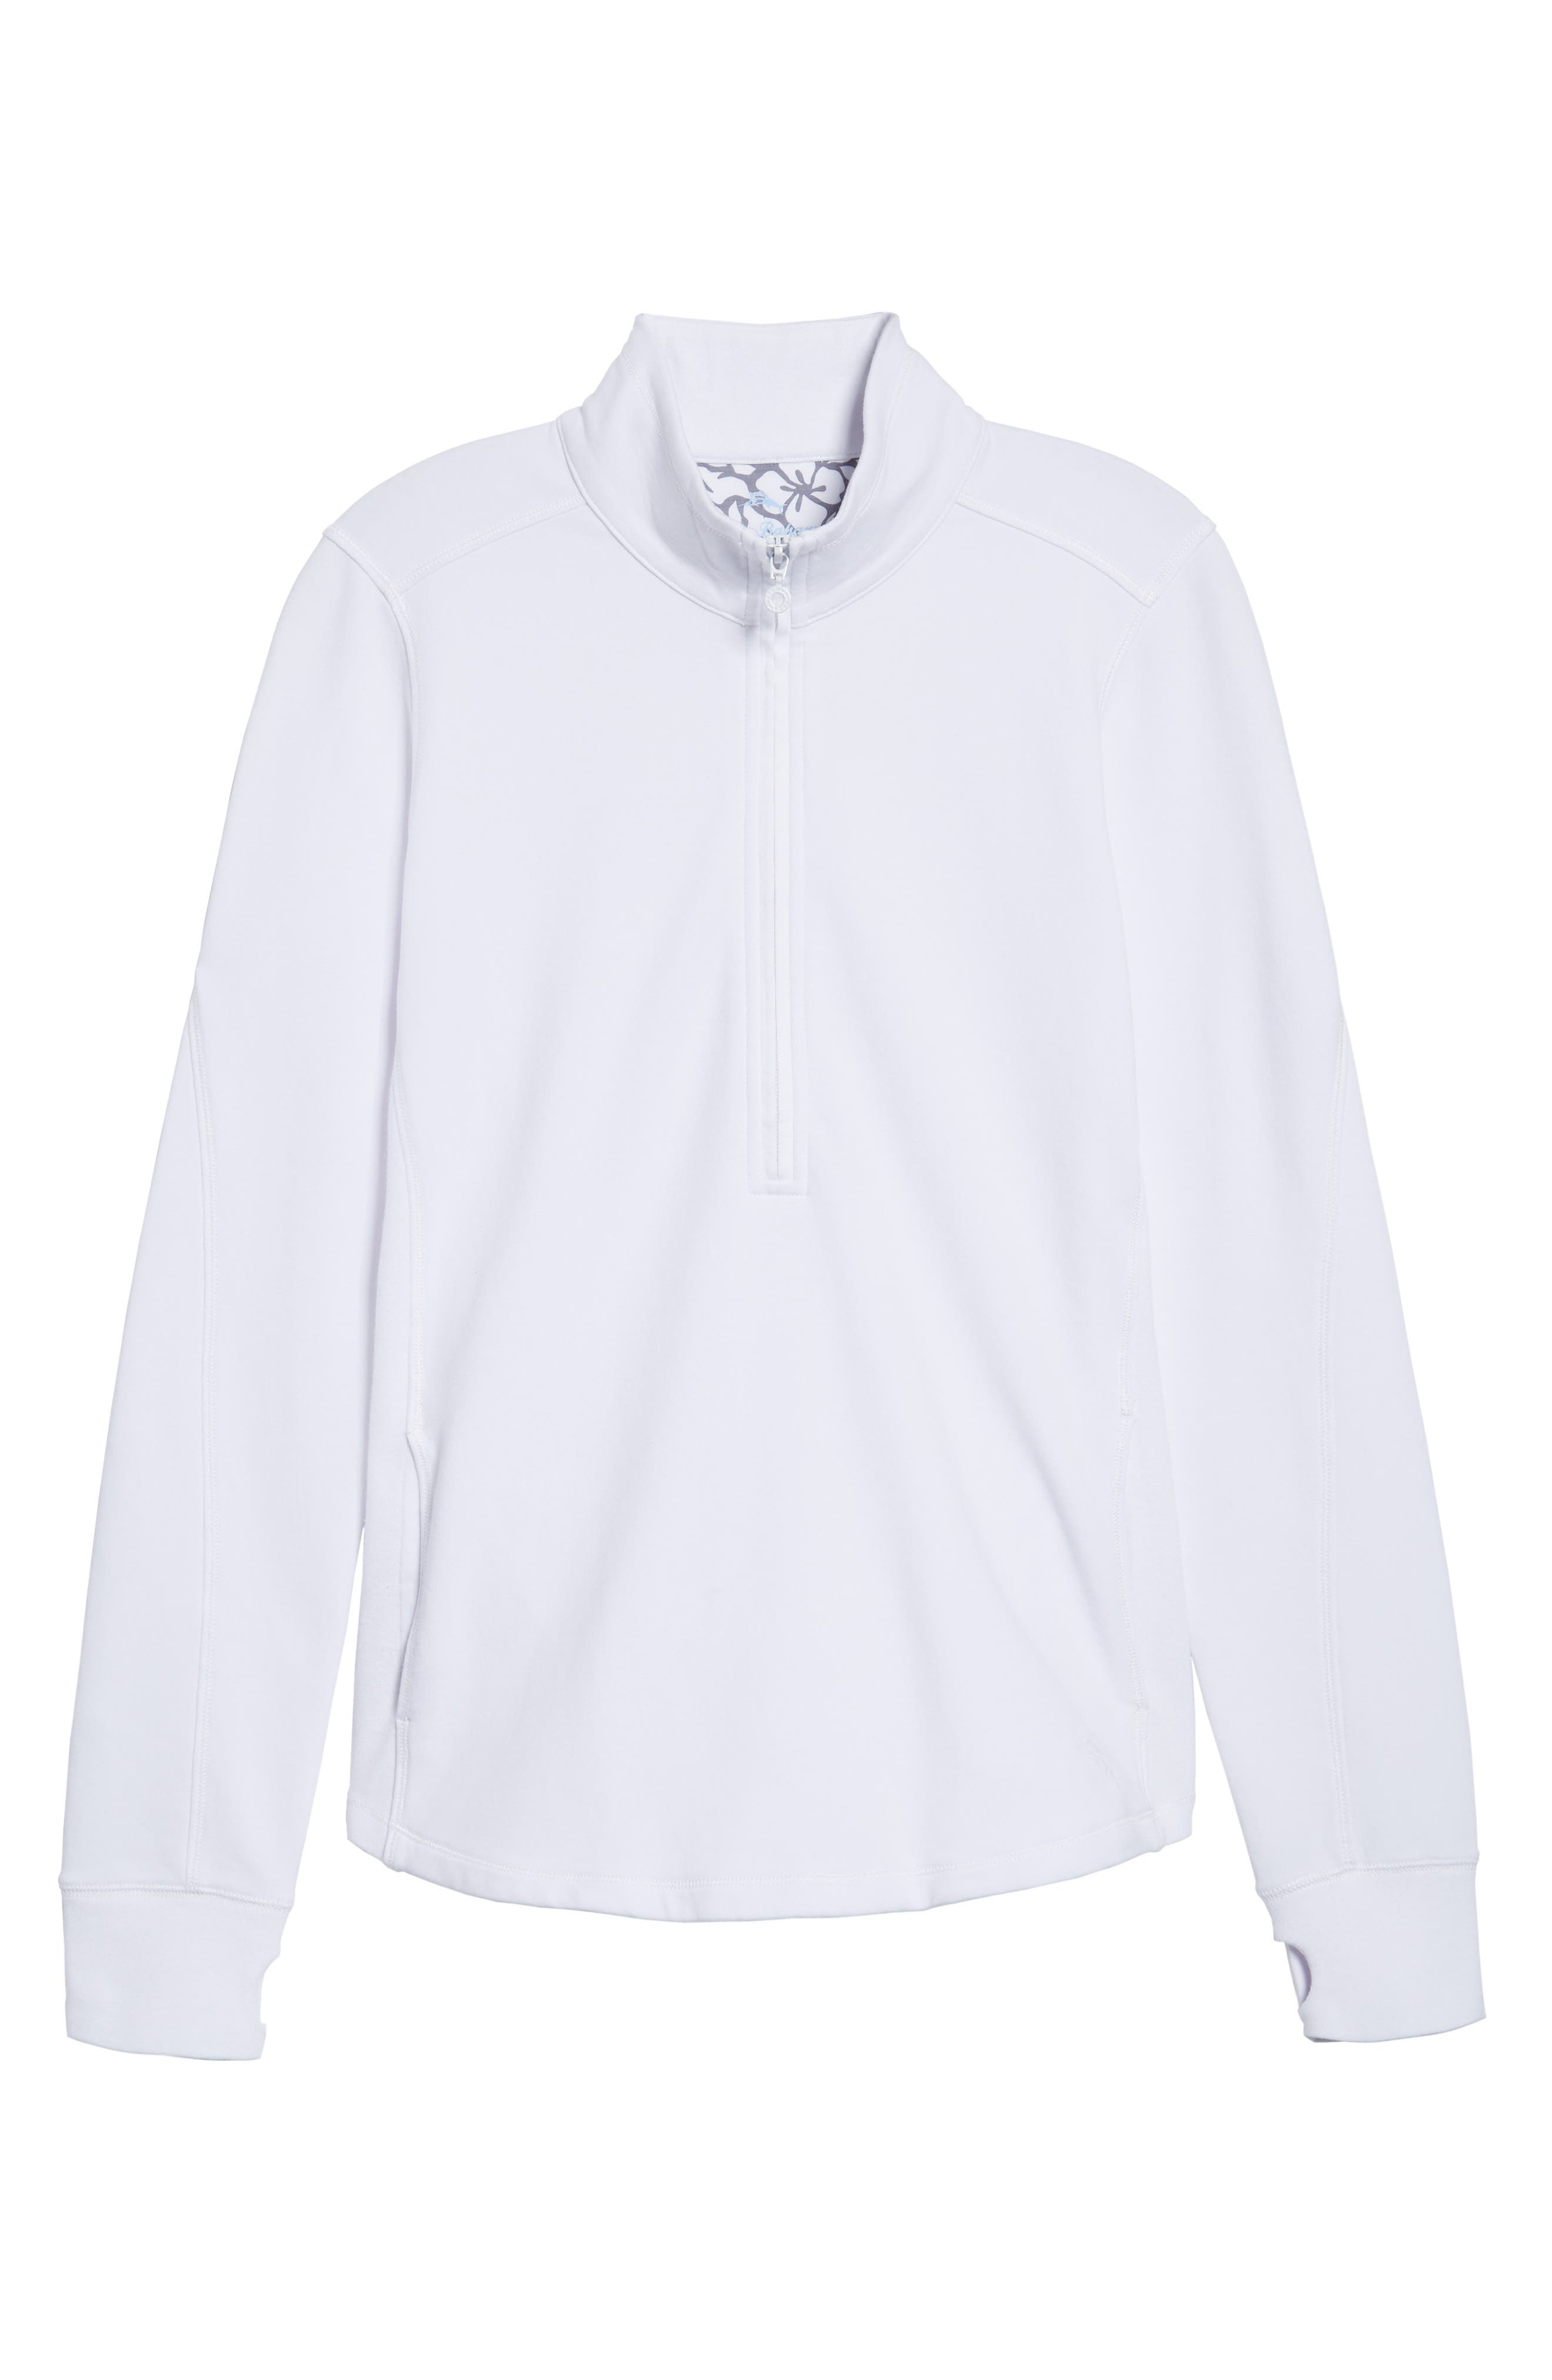 Jen and Terry Half Zip Top,                             Main thumbnail 1, color,                             White